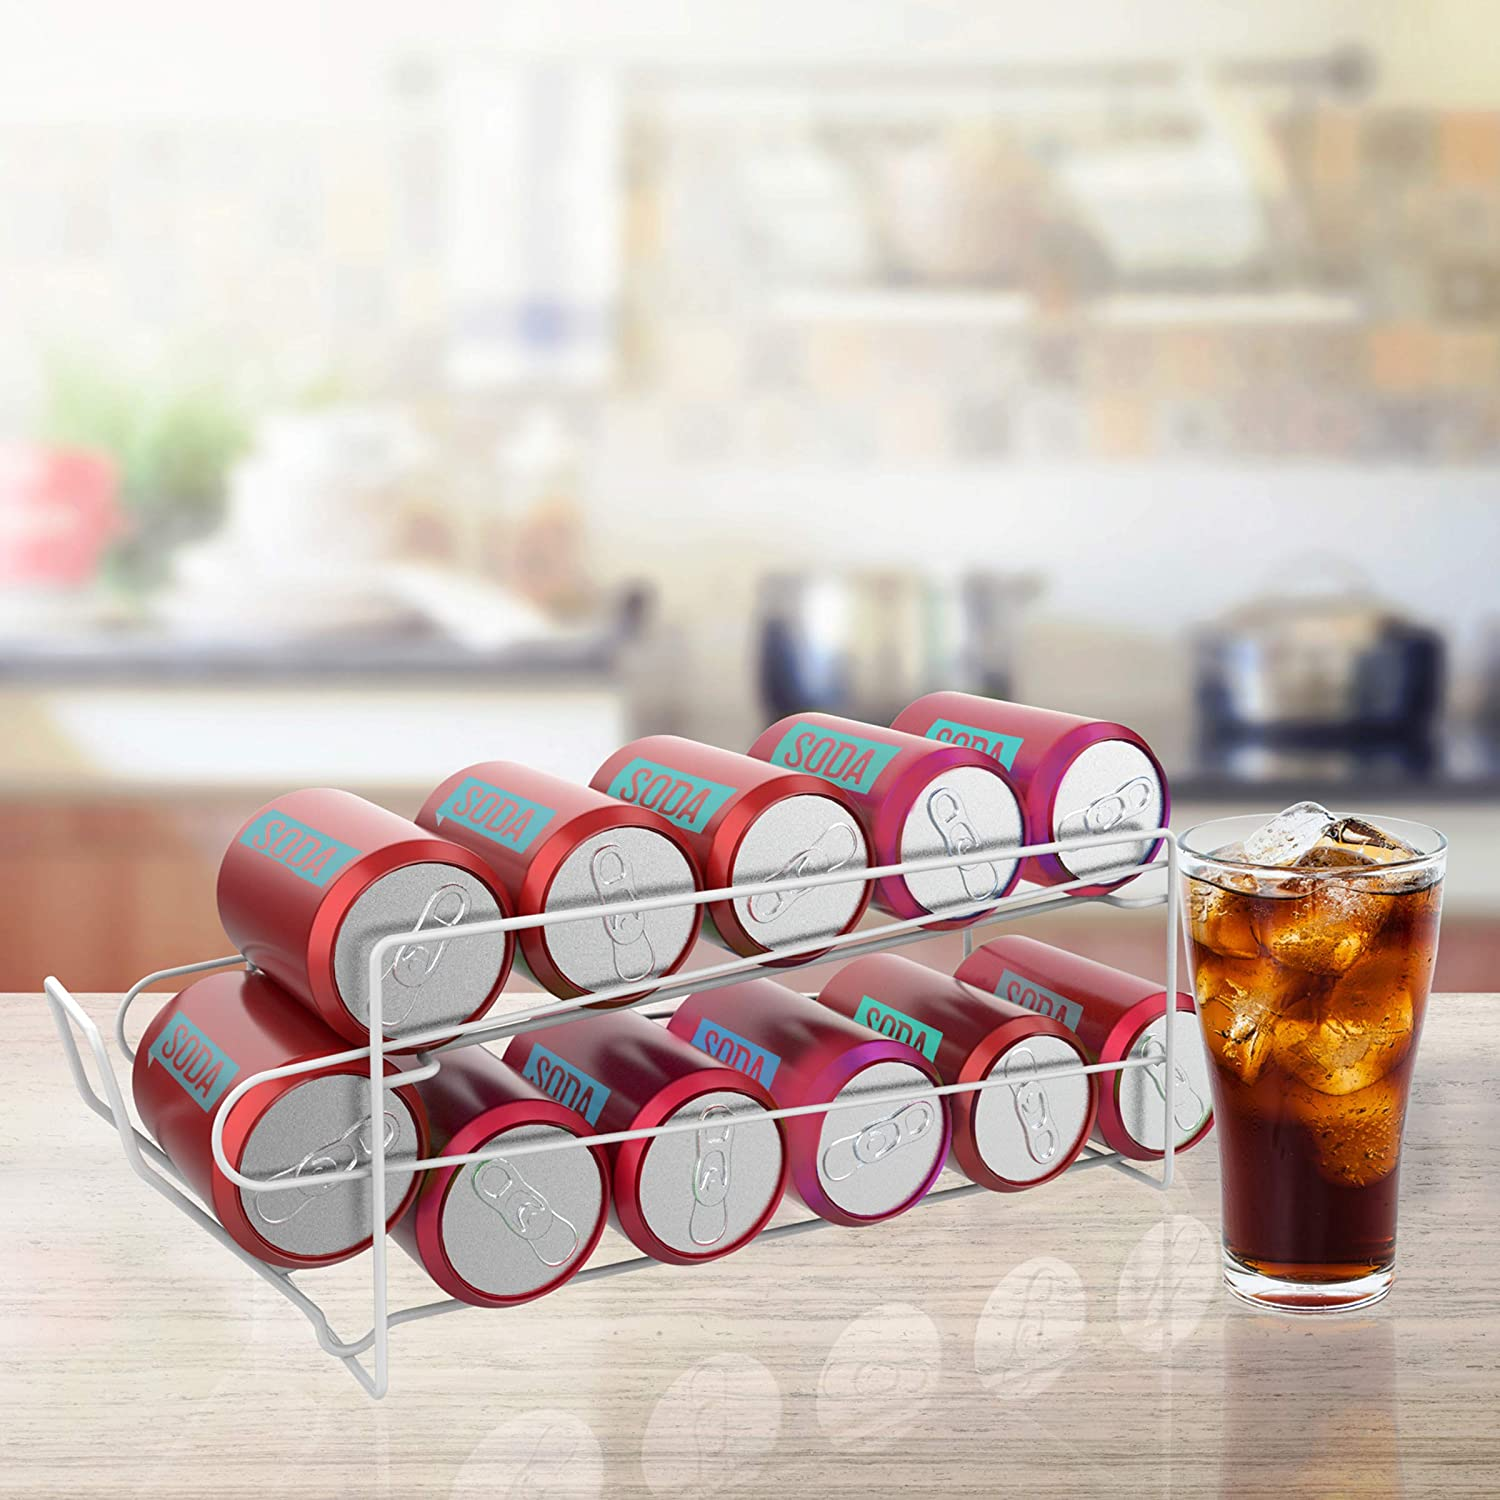 Lavish Home 83-116 2-Tier Dispenser-Organizer Holds 12 Standard Food or Soda Cans For Kitchen Pantry, Countertops, Cabinets, Fridge-Storage Rack